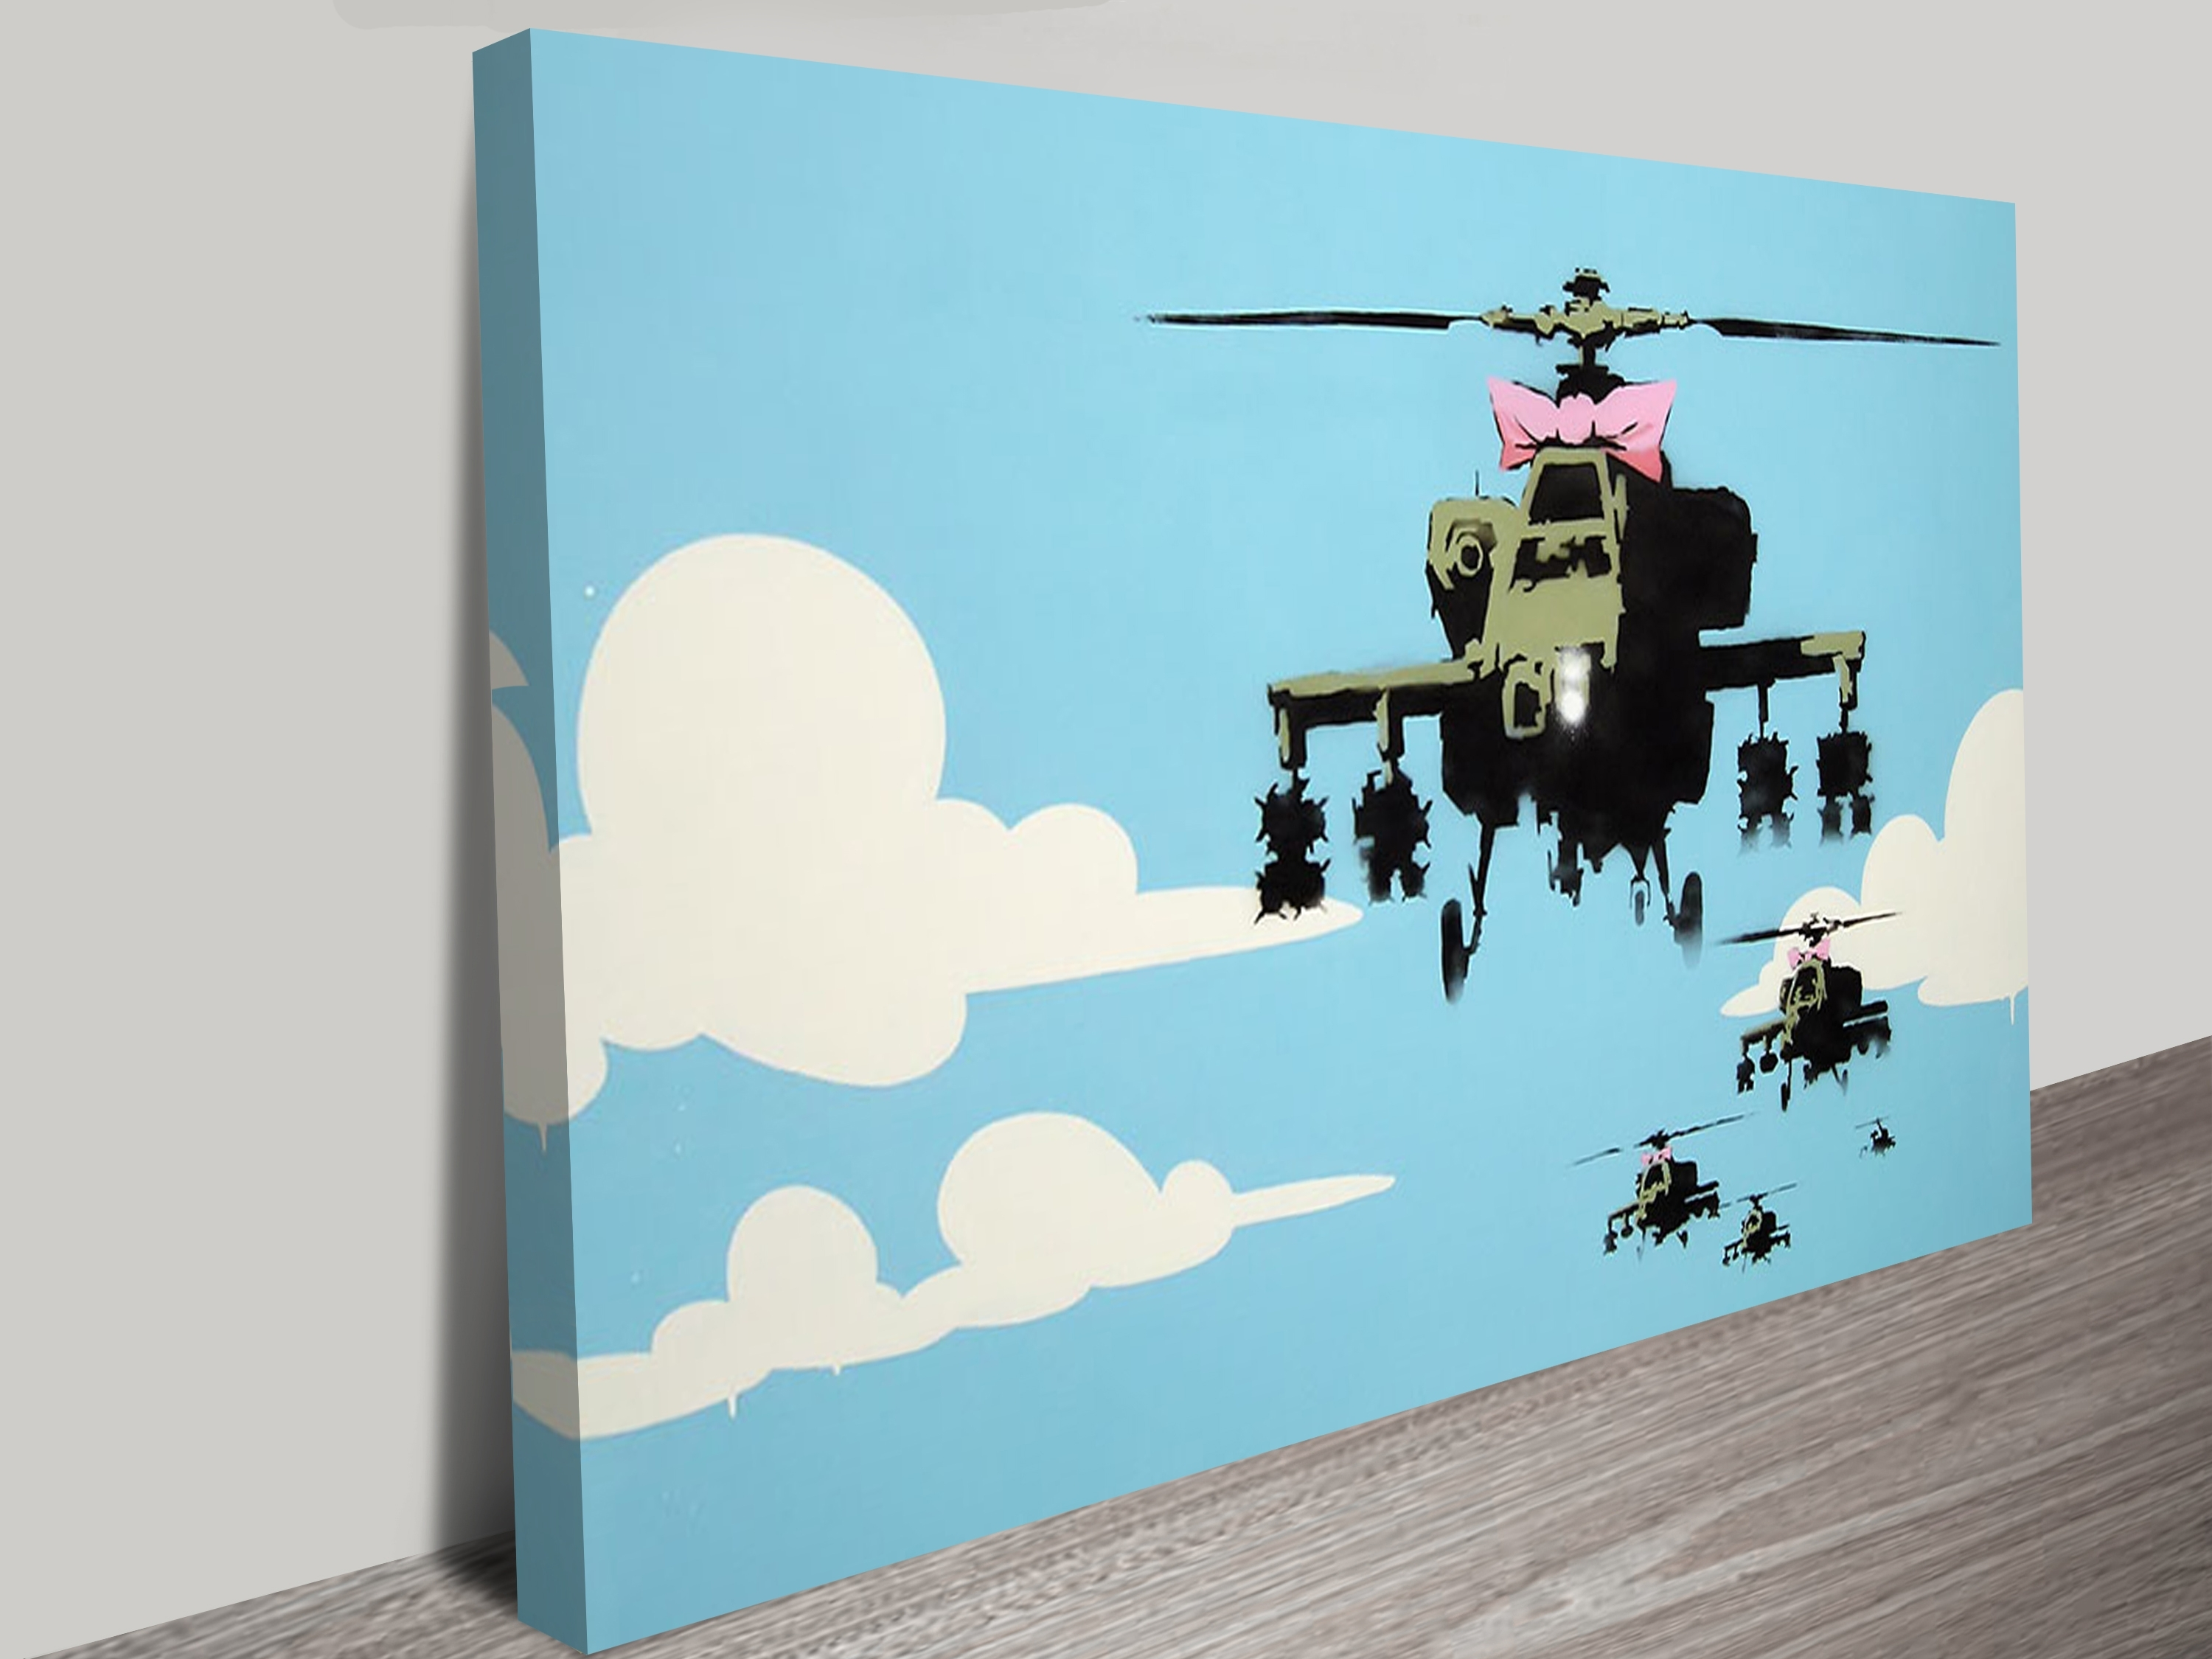 Geelong Canvas Wall Art With Fashionable Happy Copters Banksy Artwork On Canvas Geelong Australia (Gallery 12 of 15)